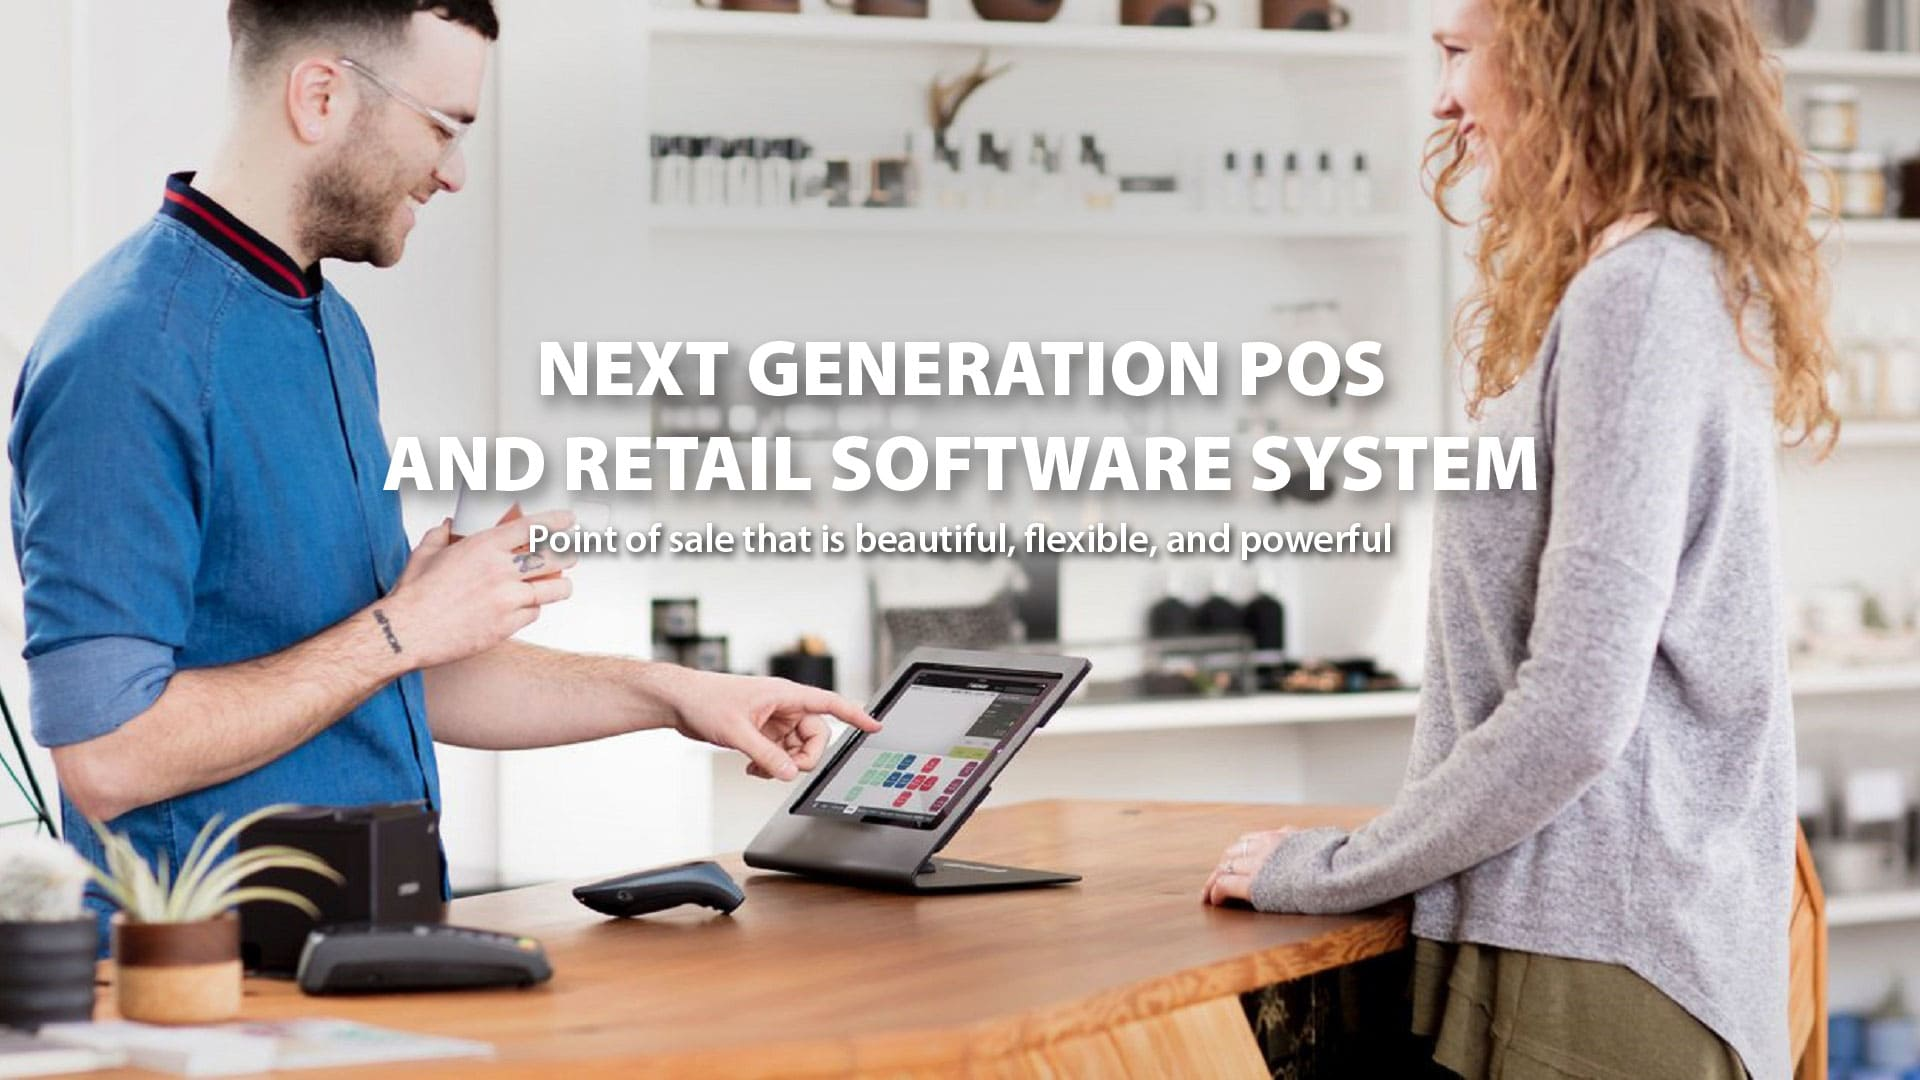 D-link POS software